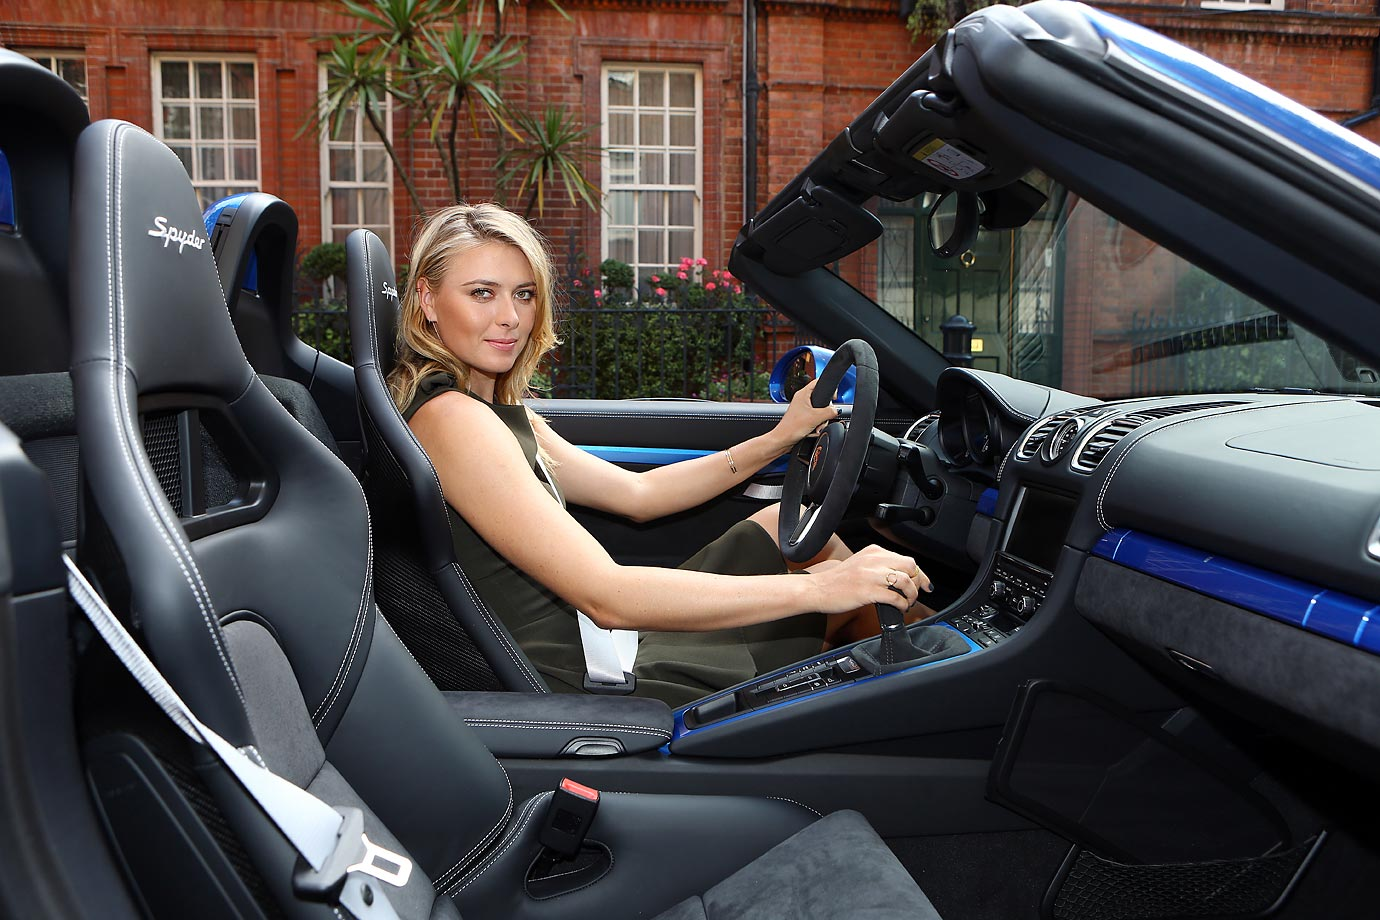 Maria Sharapova drops in at Porsche Mayfair to go for a spin in the UK's only brand new Porsche Boxster Spyder, on her way to the WTA Pre-Wimbledon Party at Kensington Roof Gardens in London.